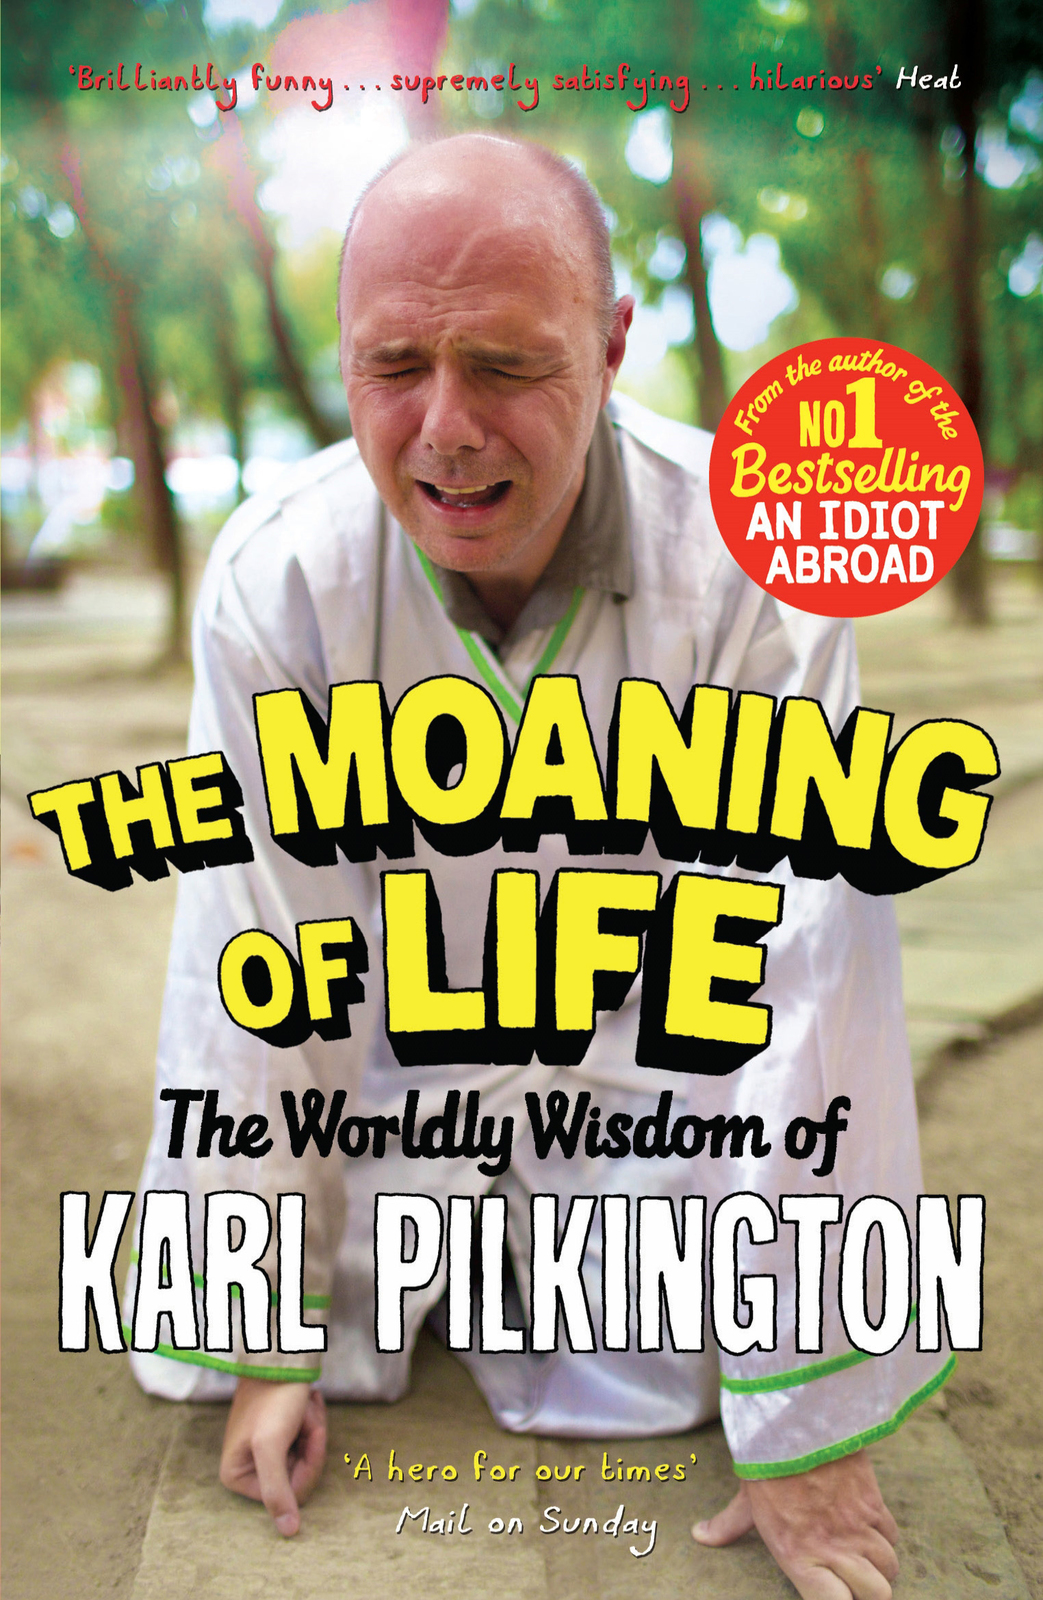 The Moaning of Life by Karl Pilkington image